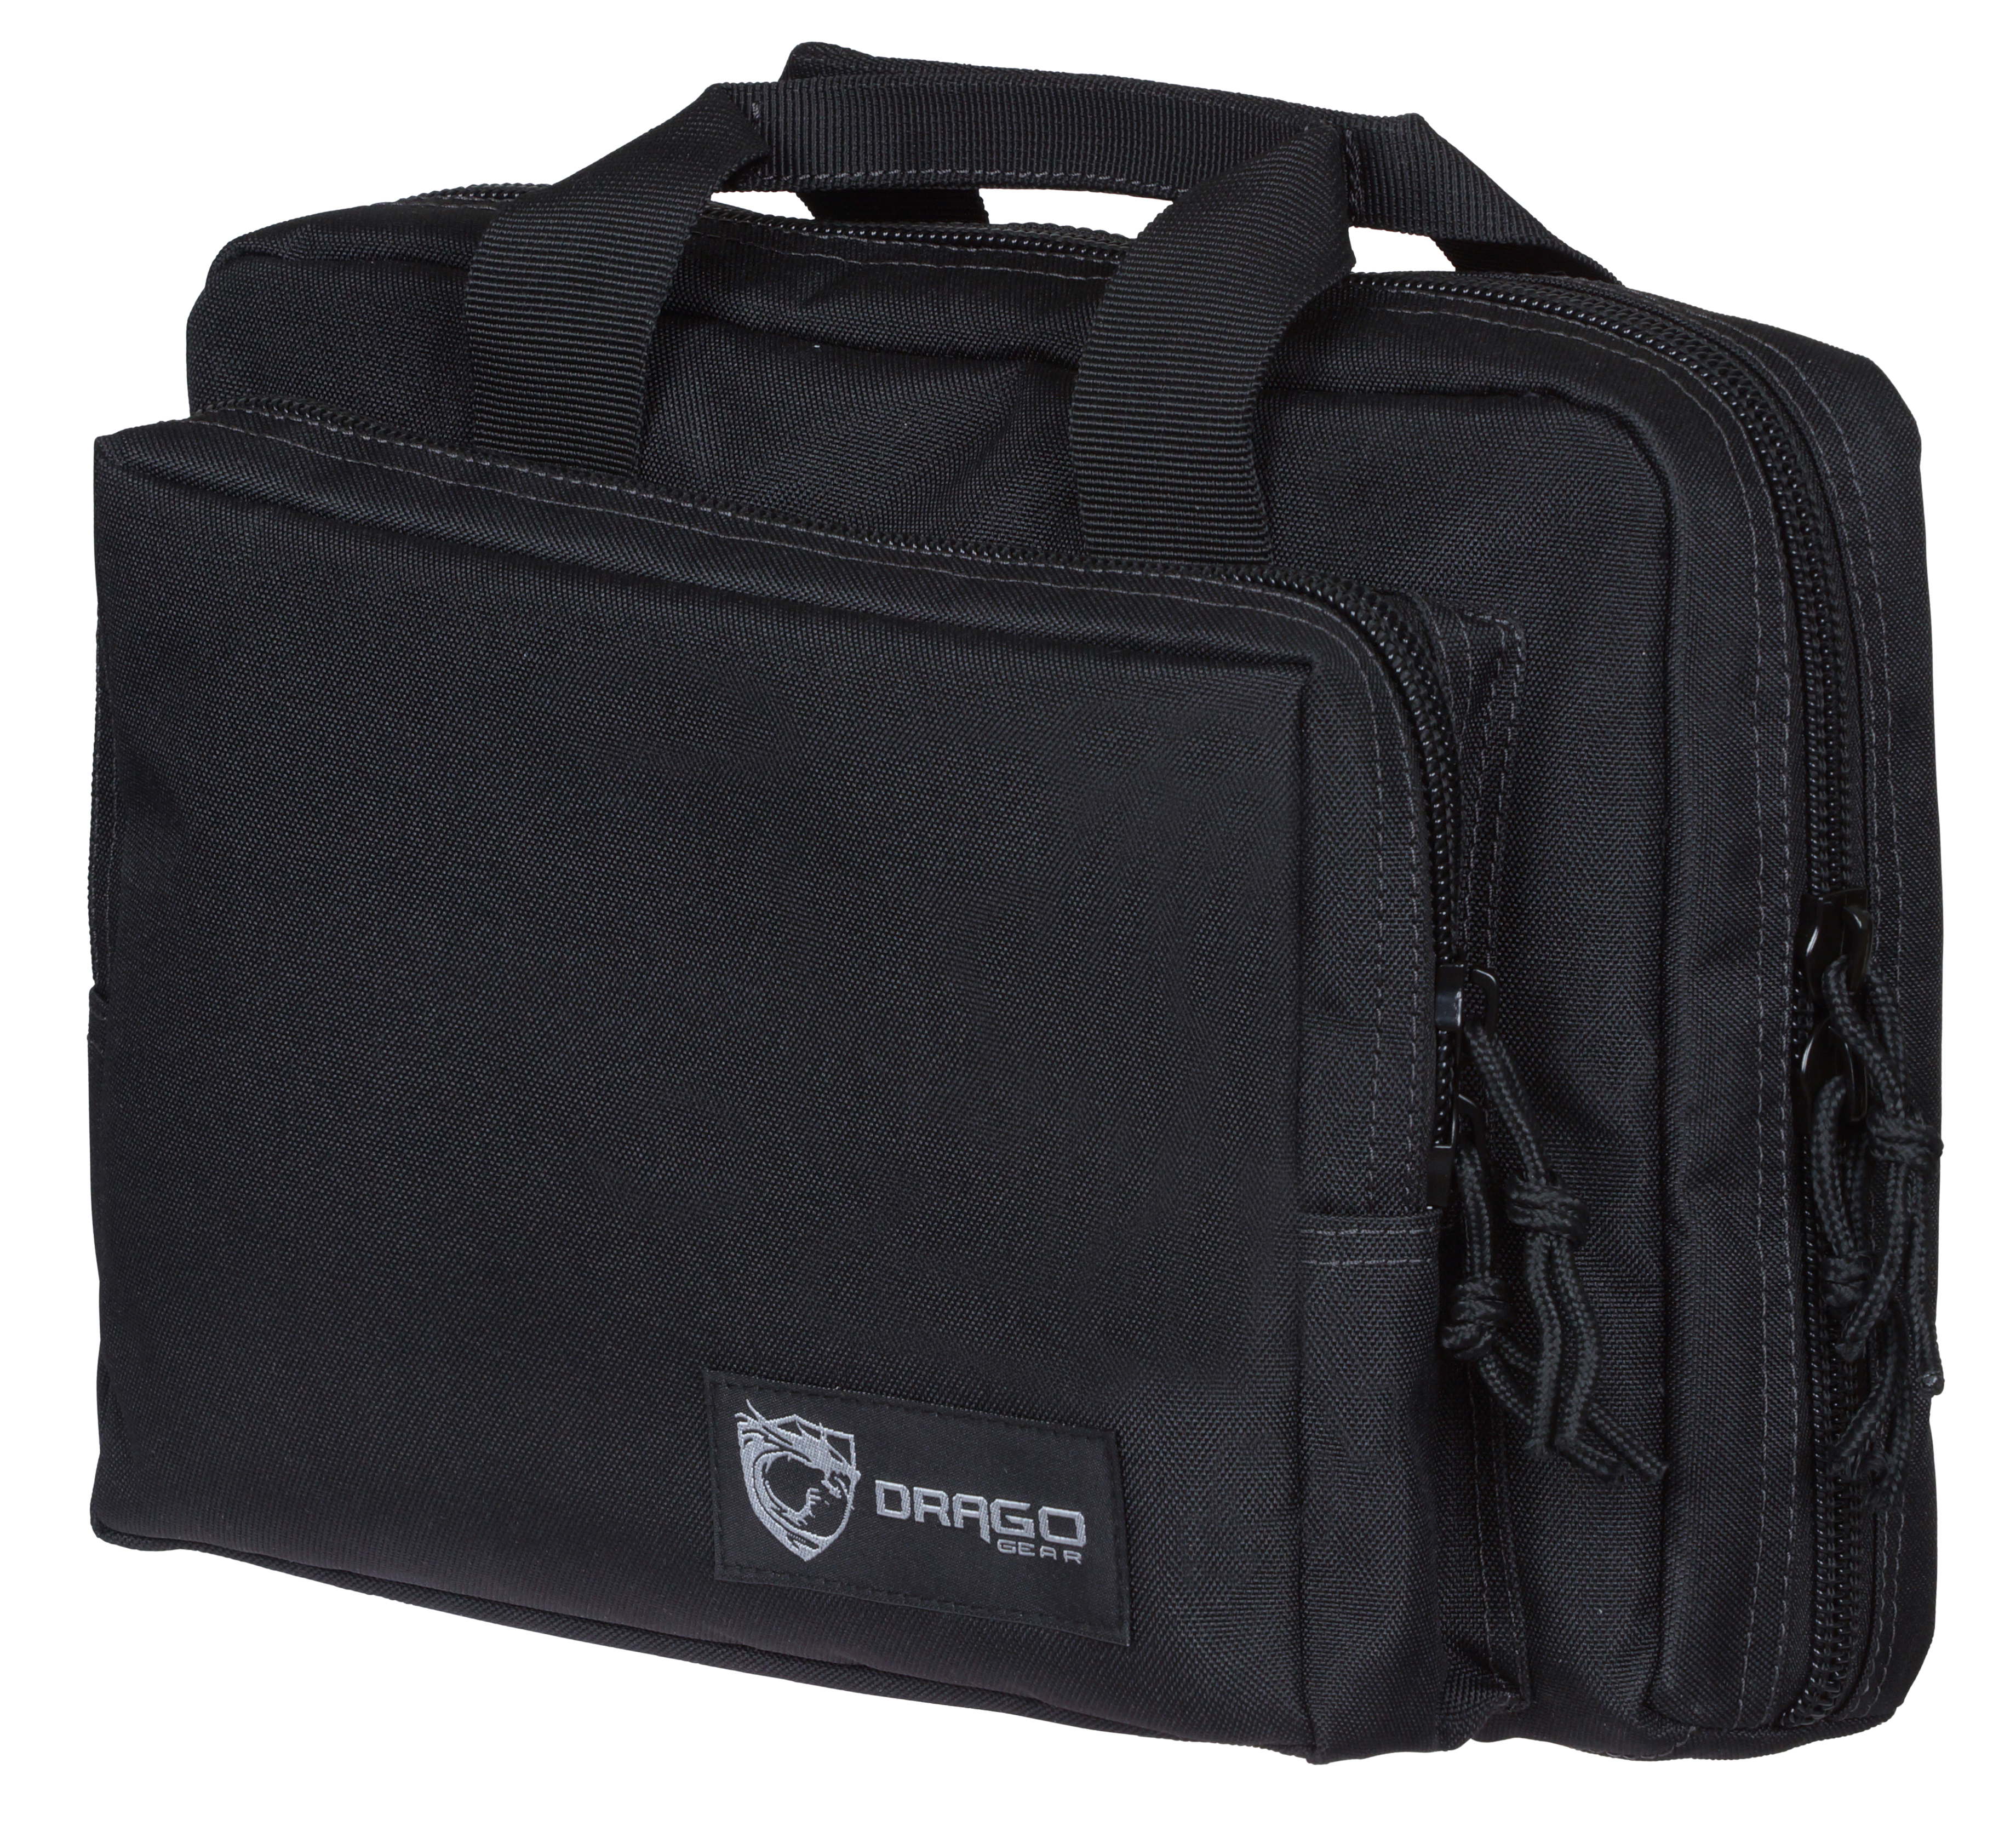 Drago Gear 12315BL Double Pistol Case 600D Polyester 12.5